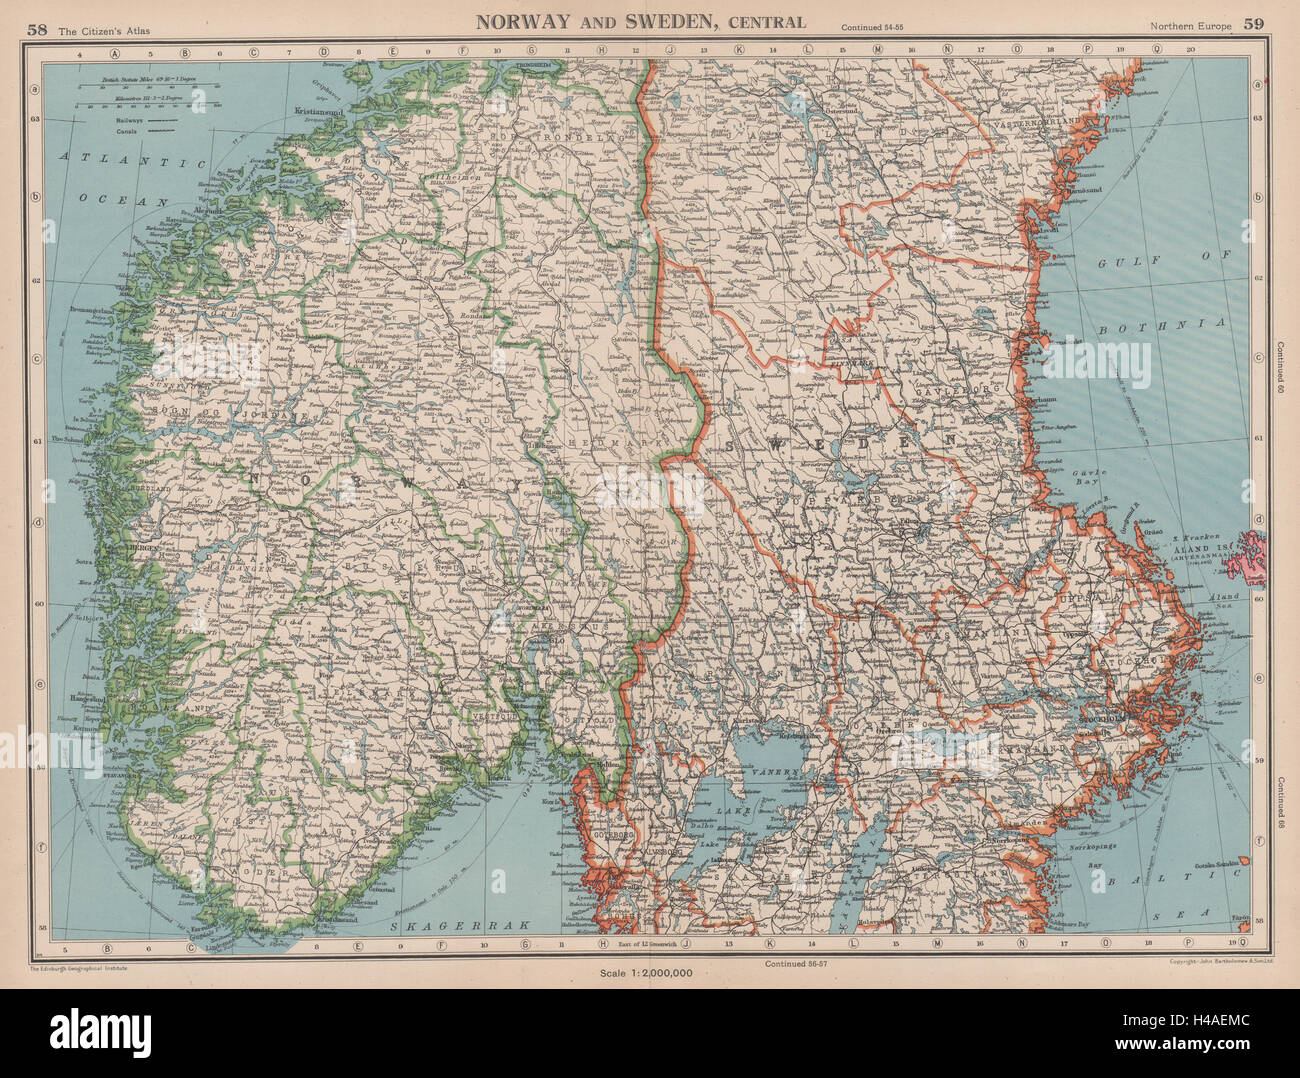 SCANDINAVIA Norway And Sweden Central Railways BARTHOLOMEW - Norway map free